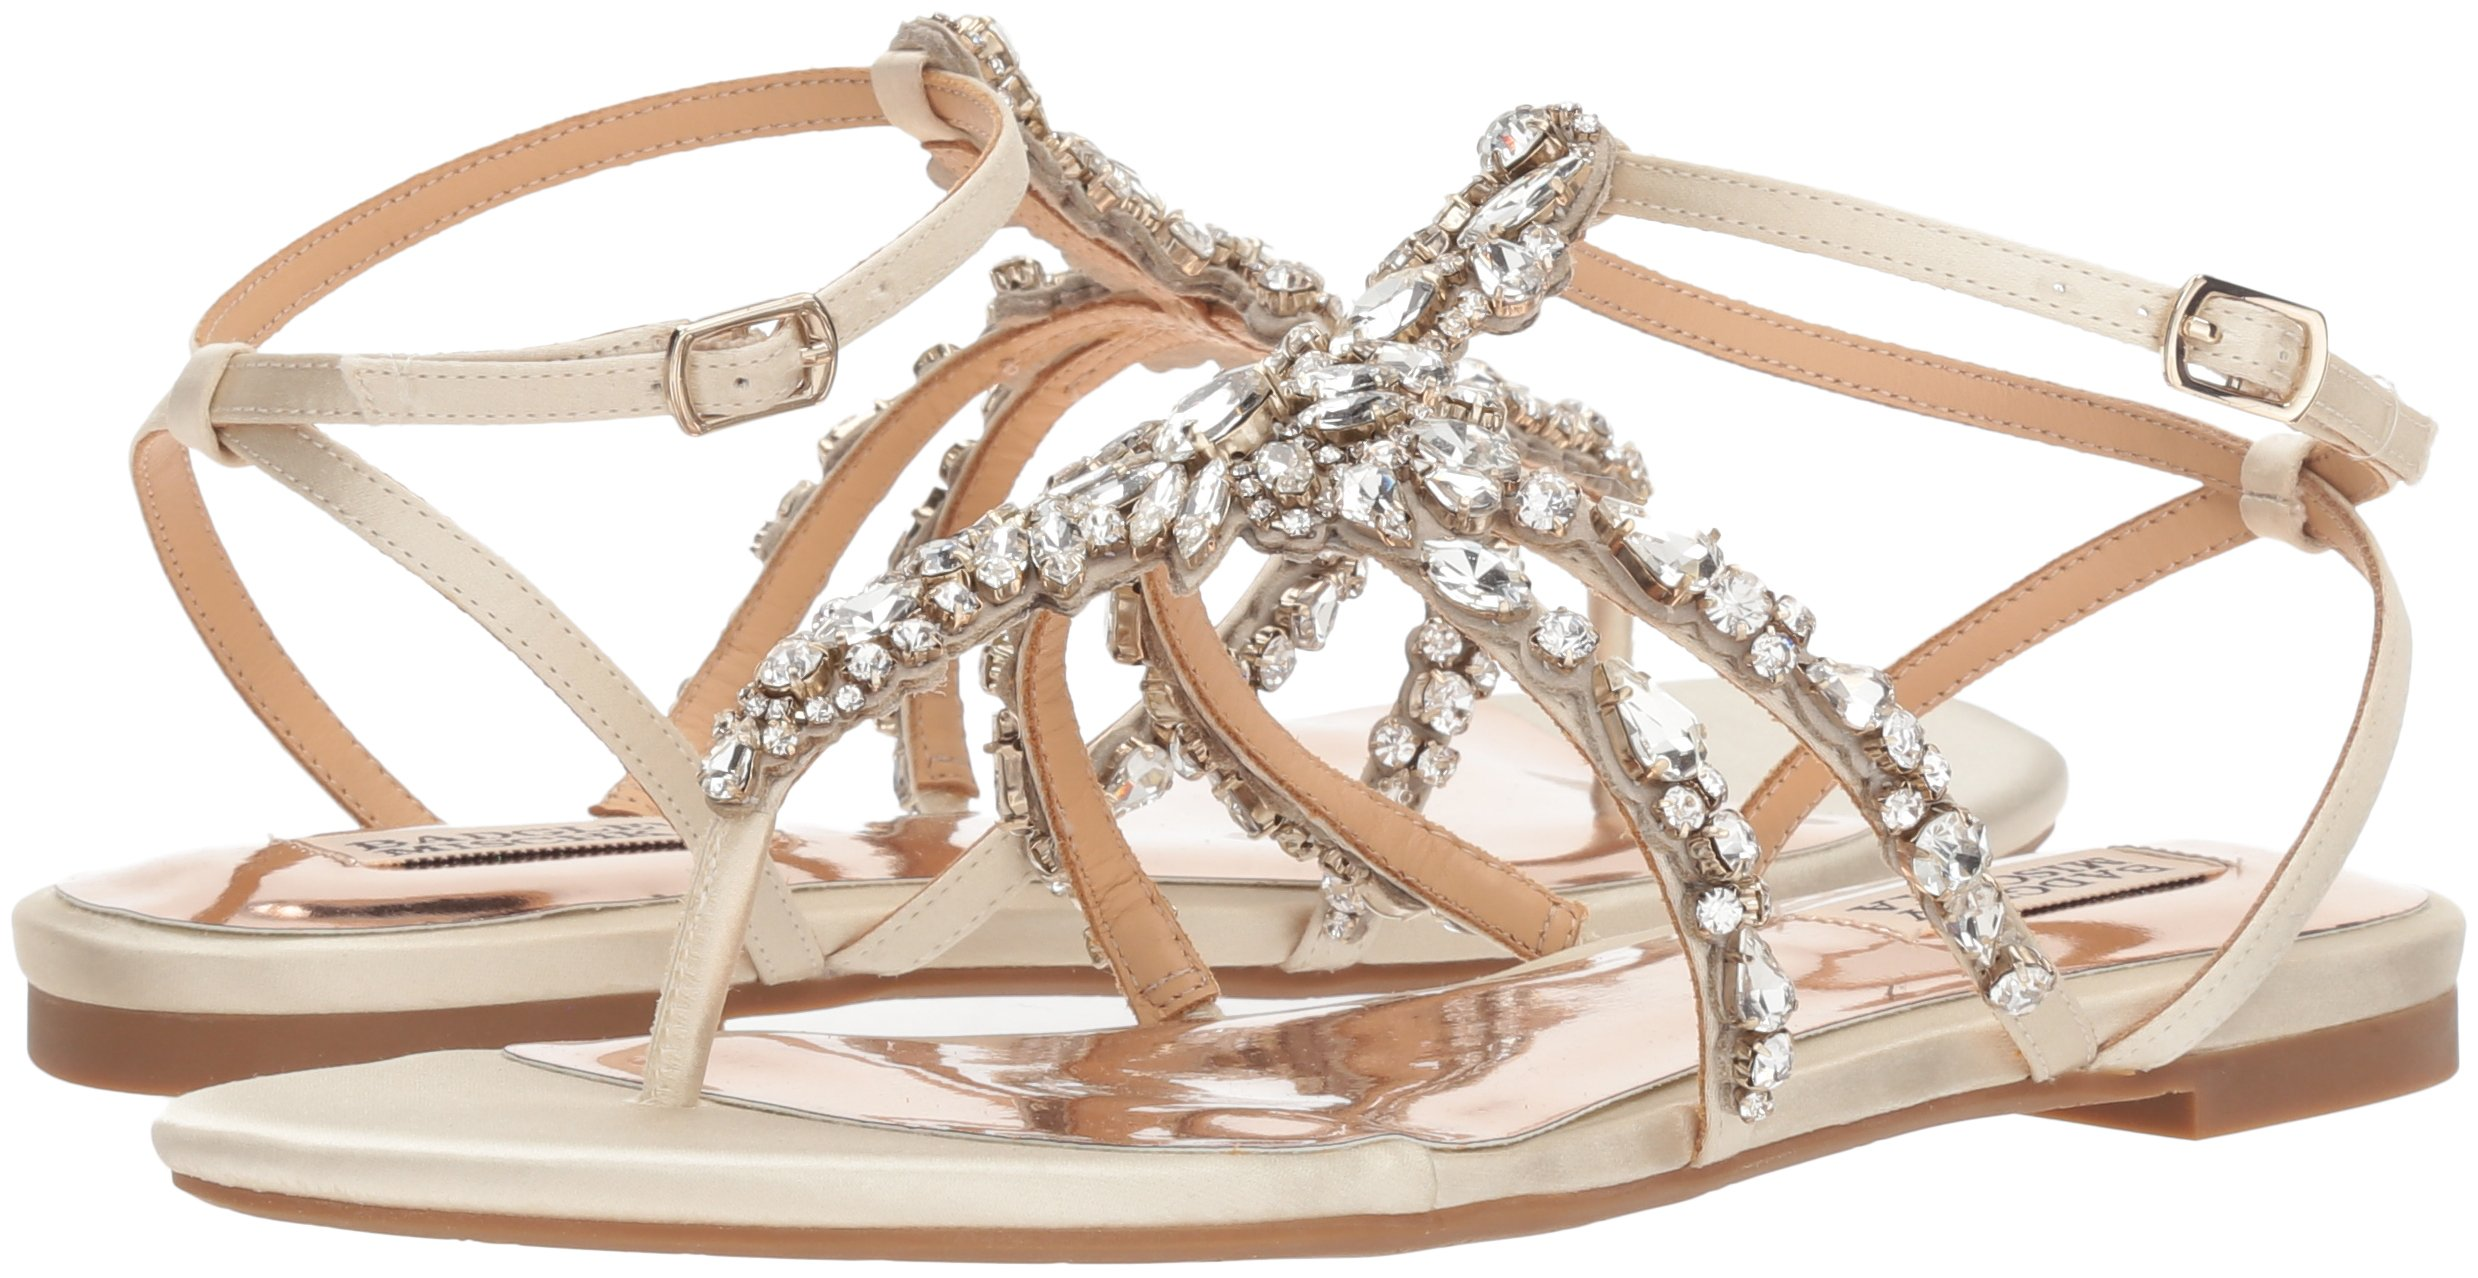 Badgley Mischka Women's Hampden Flat Sandal, Ivory, 9.5 M US by Badgley Mischka (Image #5)